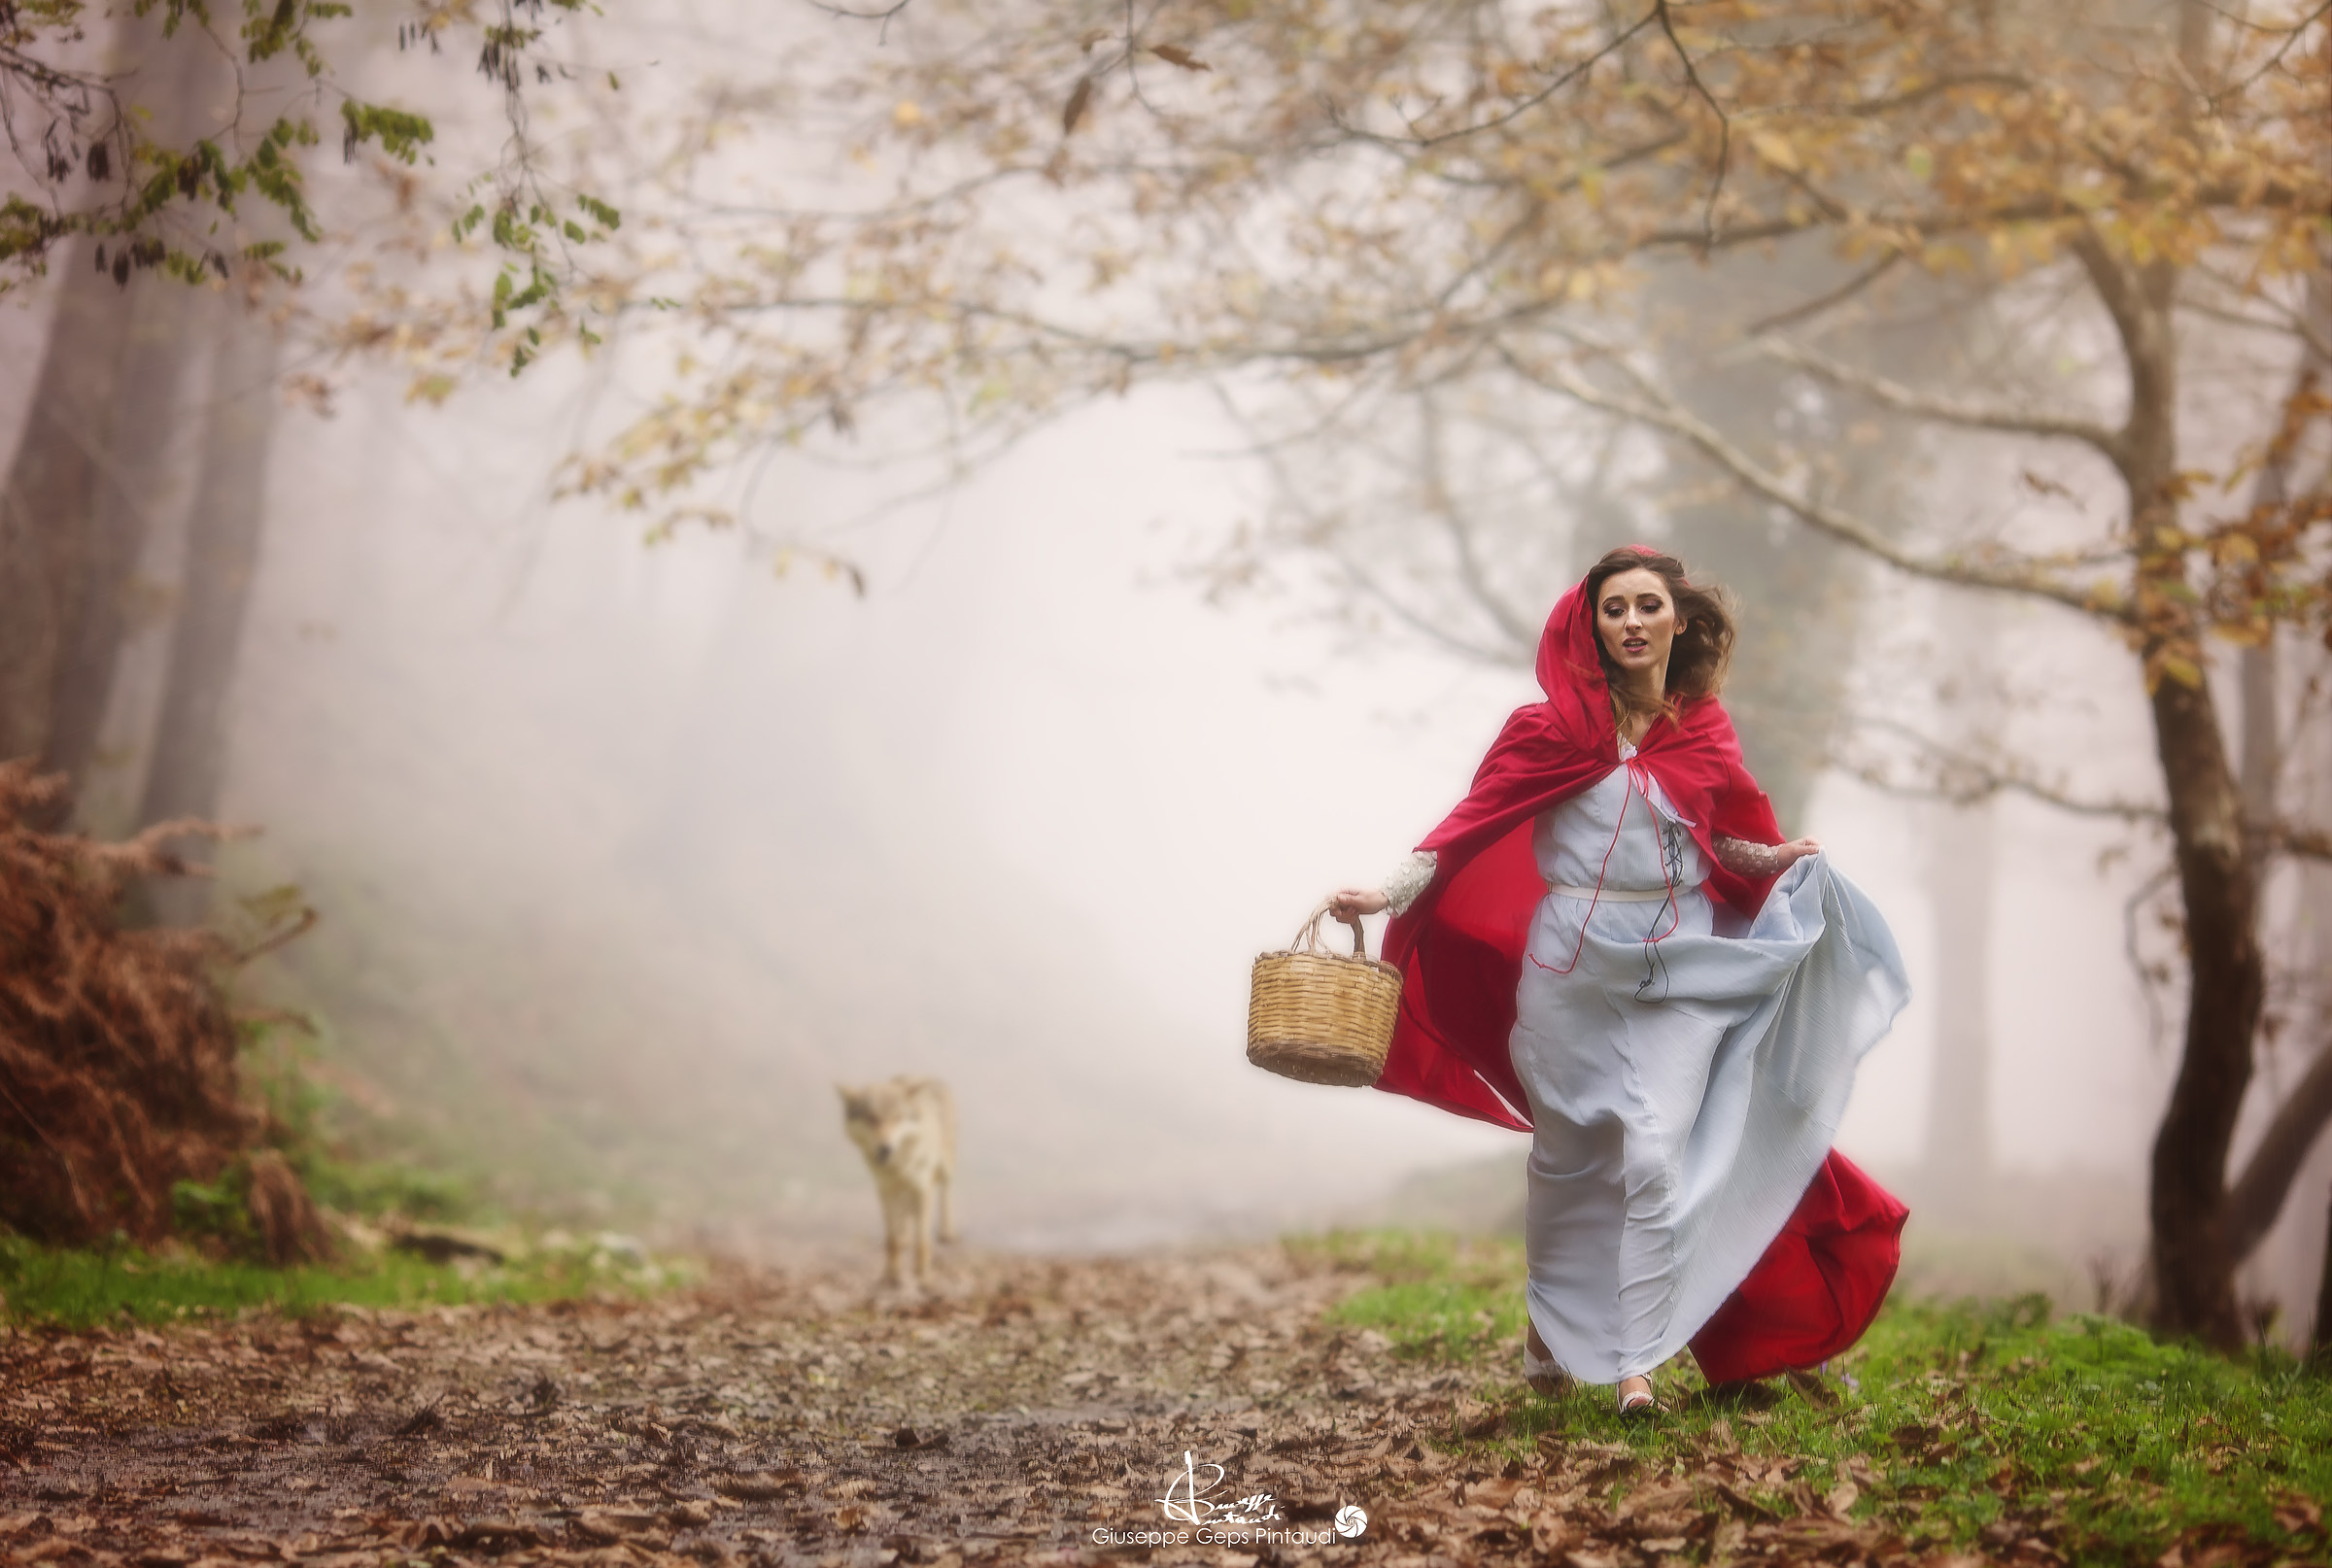 Sweet Escape (Little Red Riding Hood)...